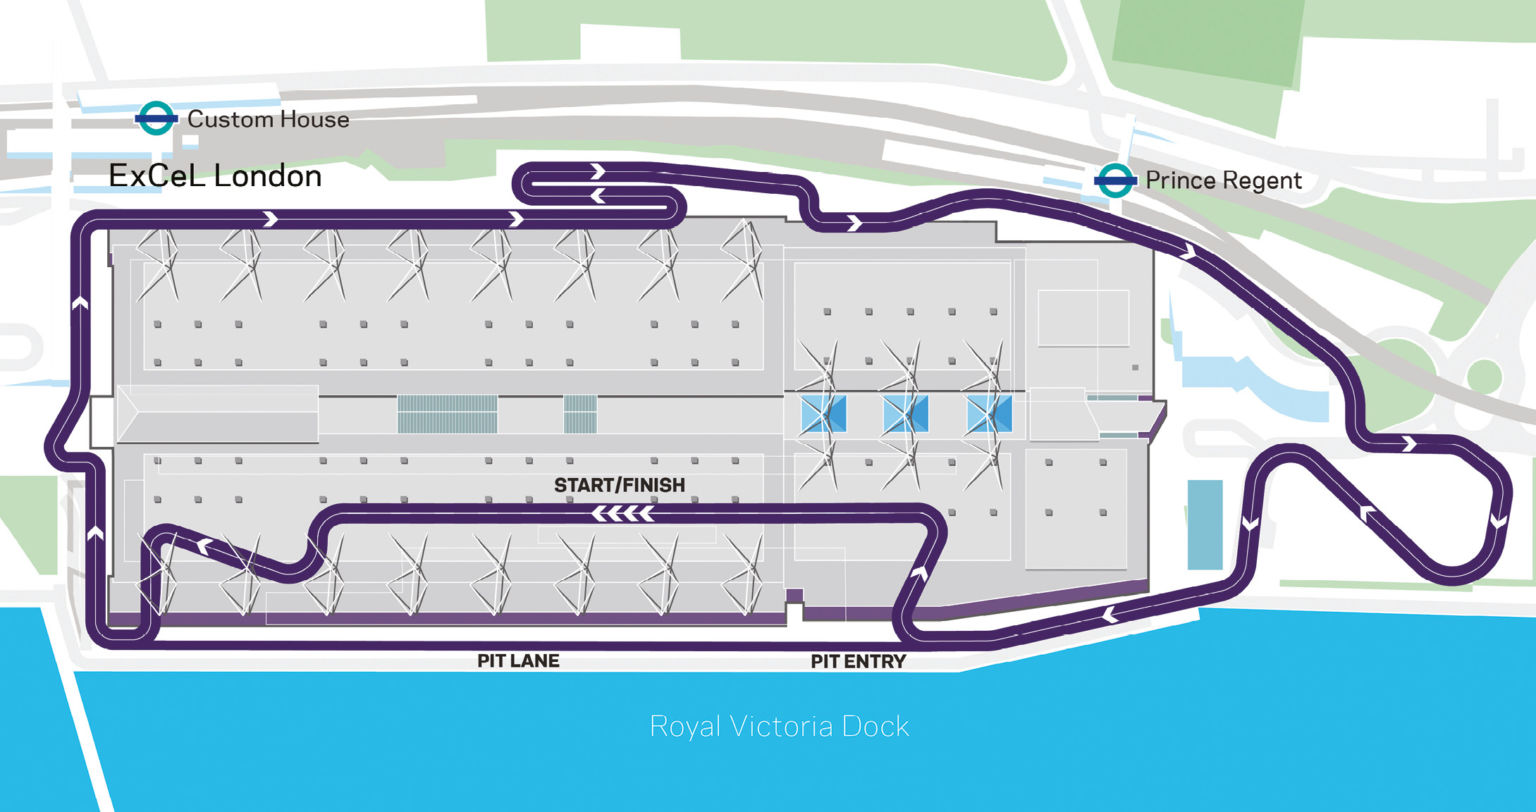 The double-header season finale in London will be held on a track that runs both around and through the ExCel arena in the Docklands area